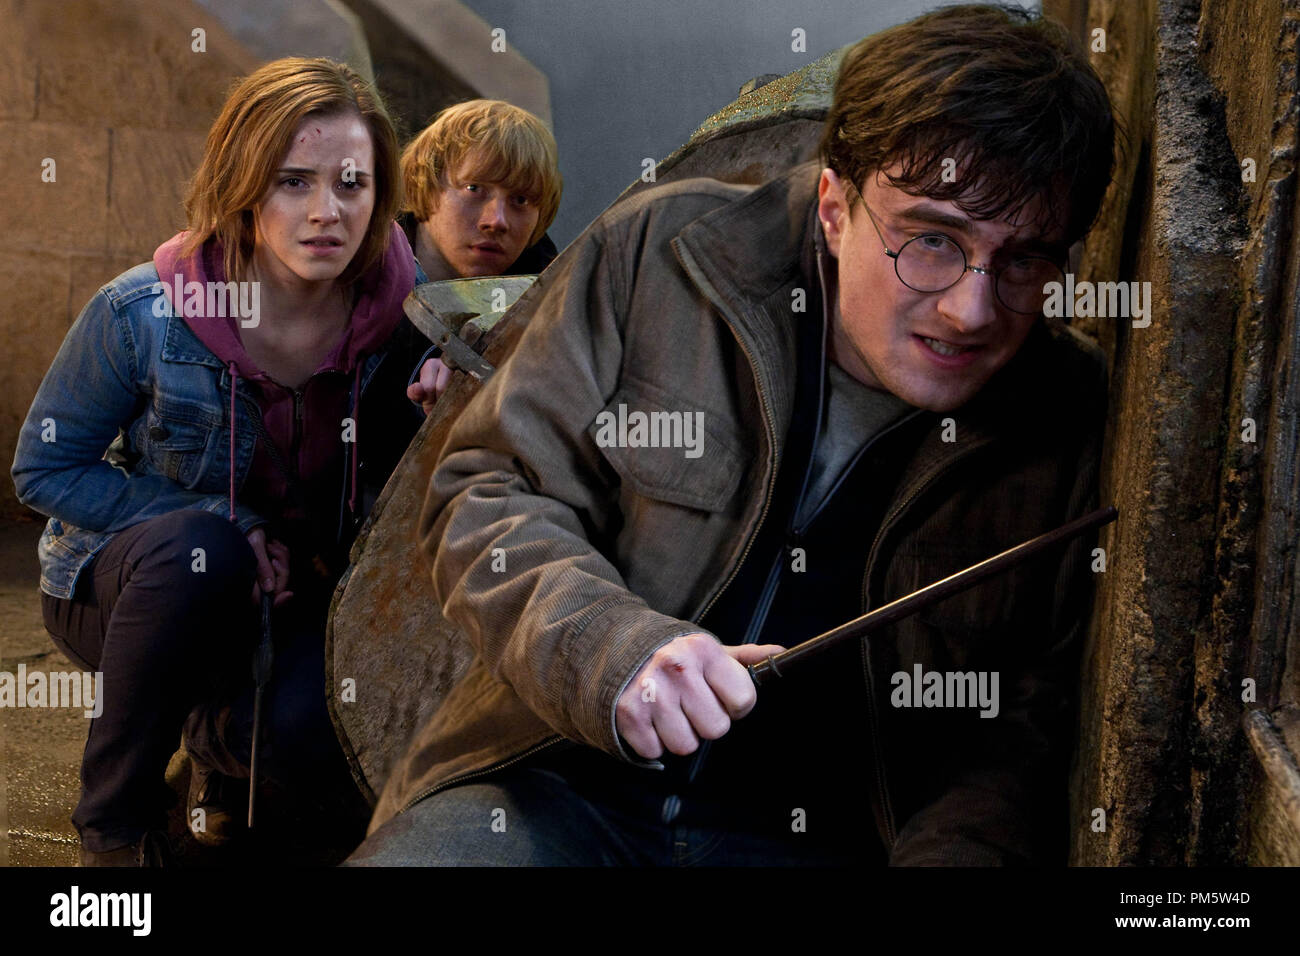 """(L-r) EMMA WATSON as Hermione Granger, RUPERT GRINT as Ron Weasley and DANIEL RADCLIFFE as Harry Potter in Warner Bros. Pictures' fantasy adventure """"HARRY POTTER AND THE DEATHLY HALLOWS – PART 2,"""" a Warner Bros. Pictures release. - Stock Image"""